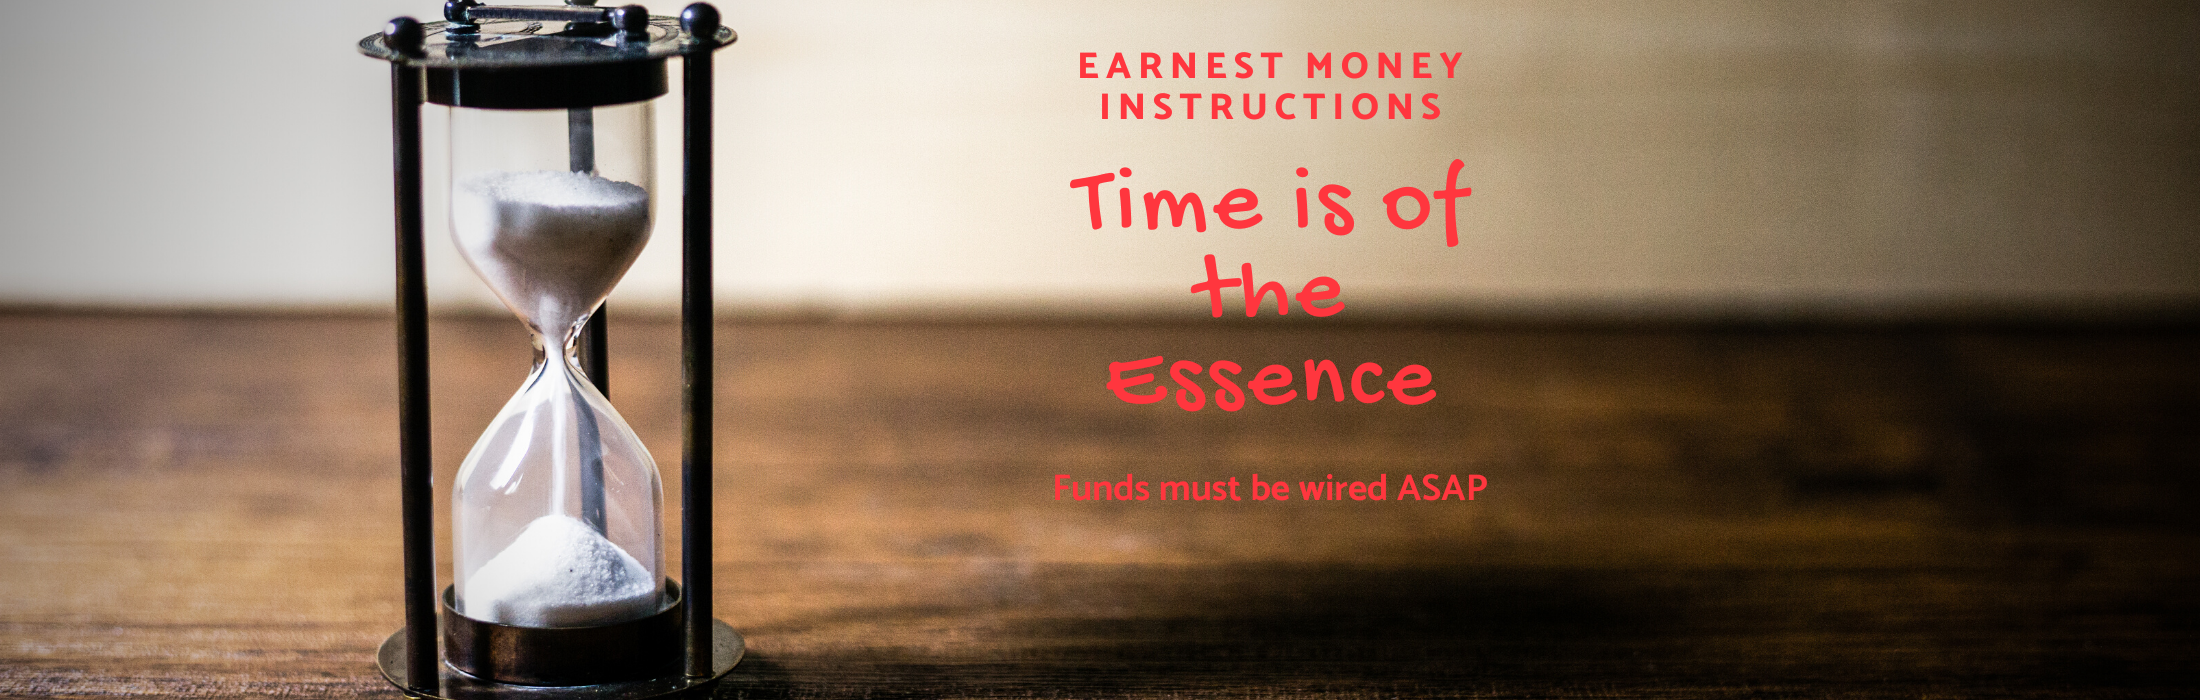 RG_Earnest_money-_Time_is_of_the_Essence.png